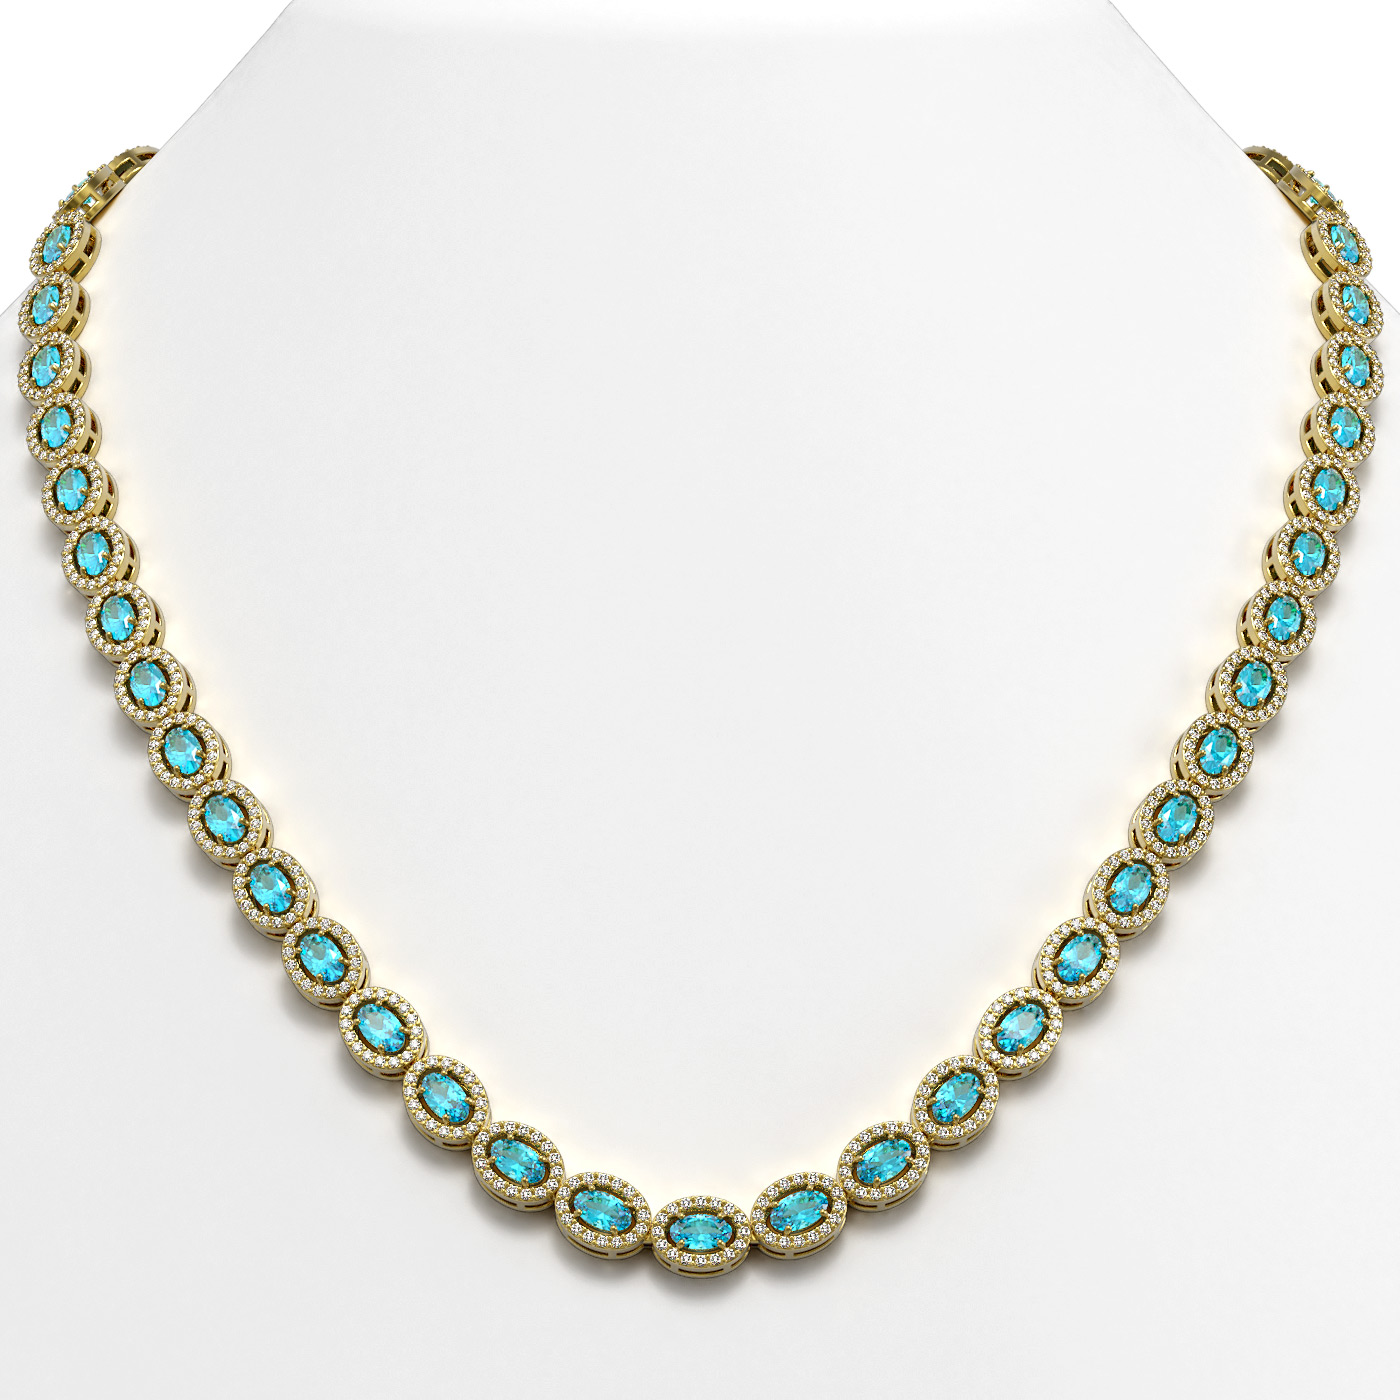 24.07 Ctw Swiss Topaz & Diamond Necklace Yellow Gold